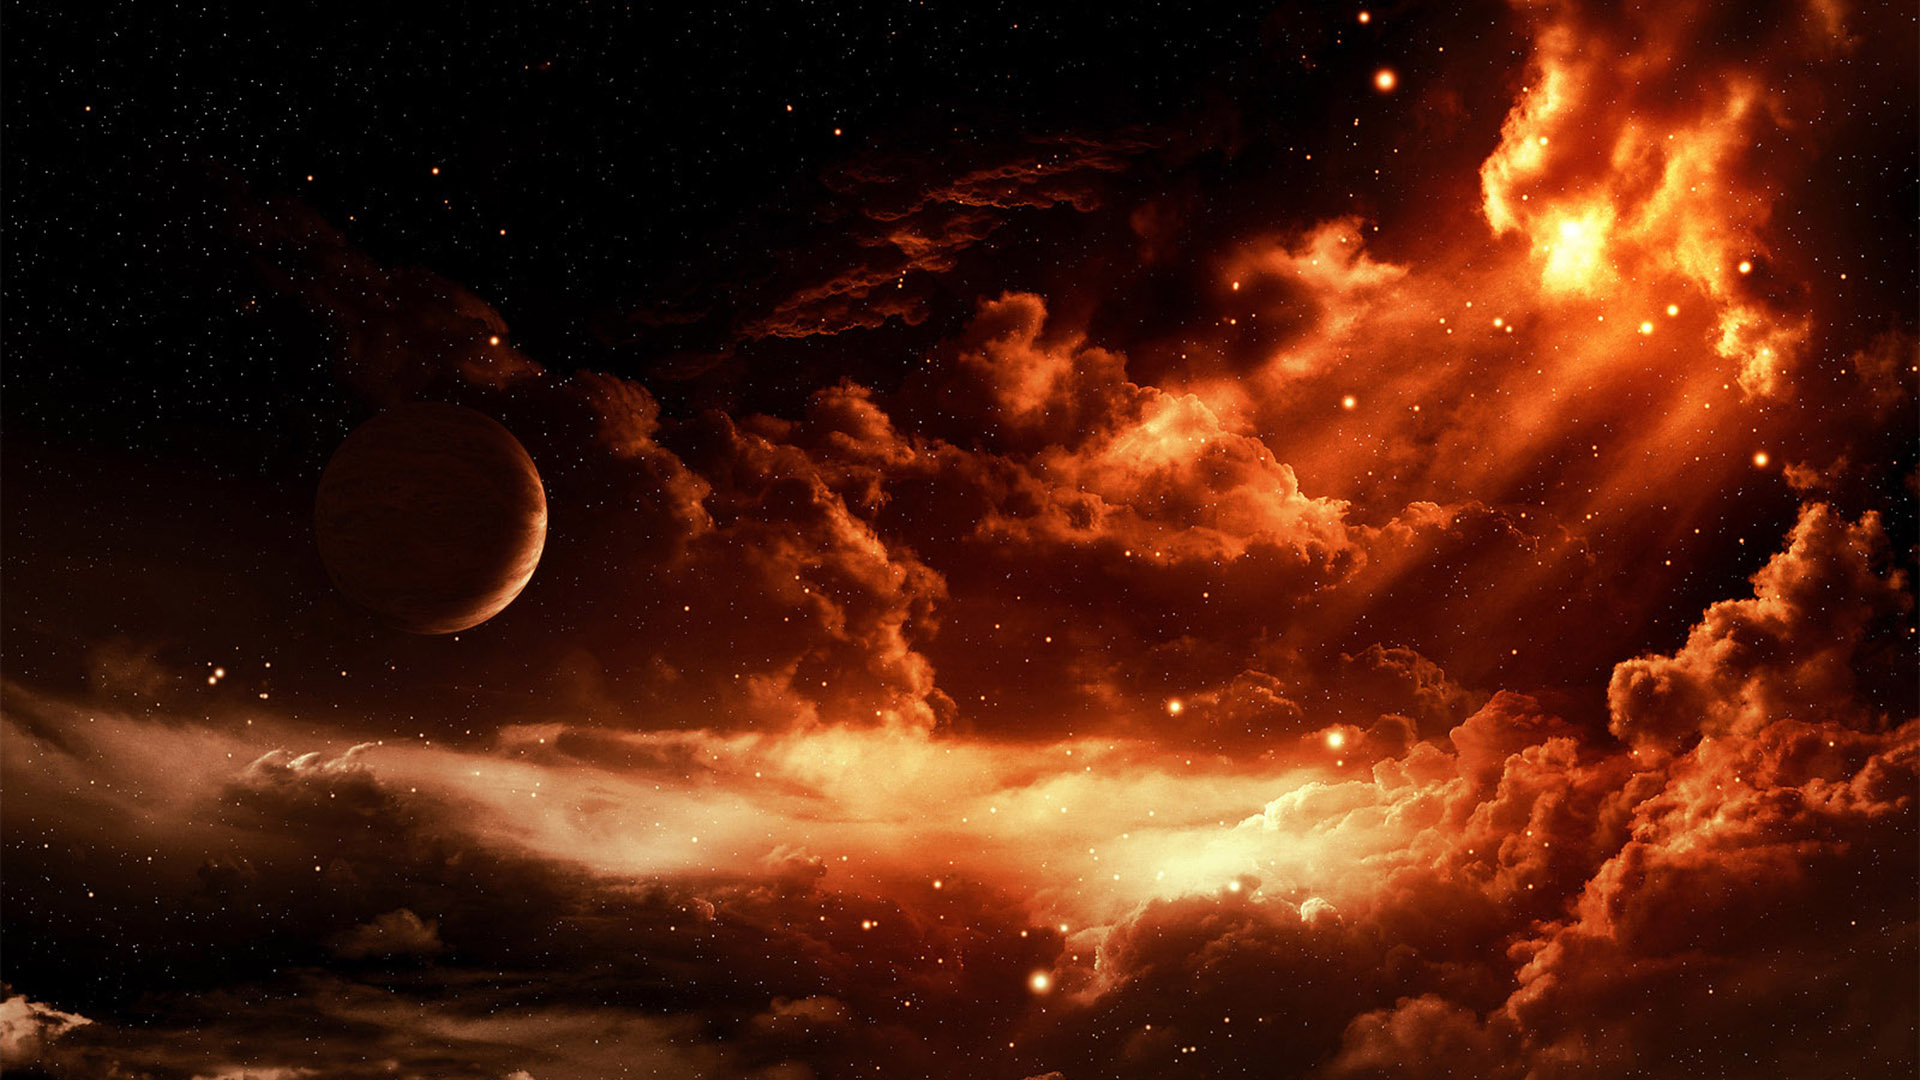 Fantasy space art free desktop wallpapers for widescreen hd and wallpaper voltagebd Choice Image